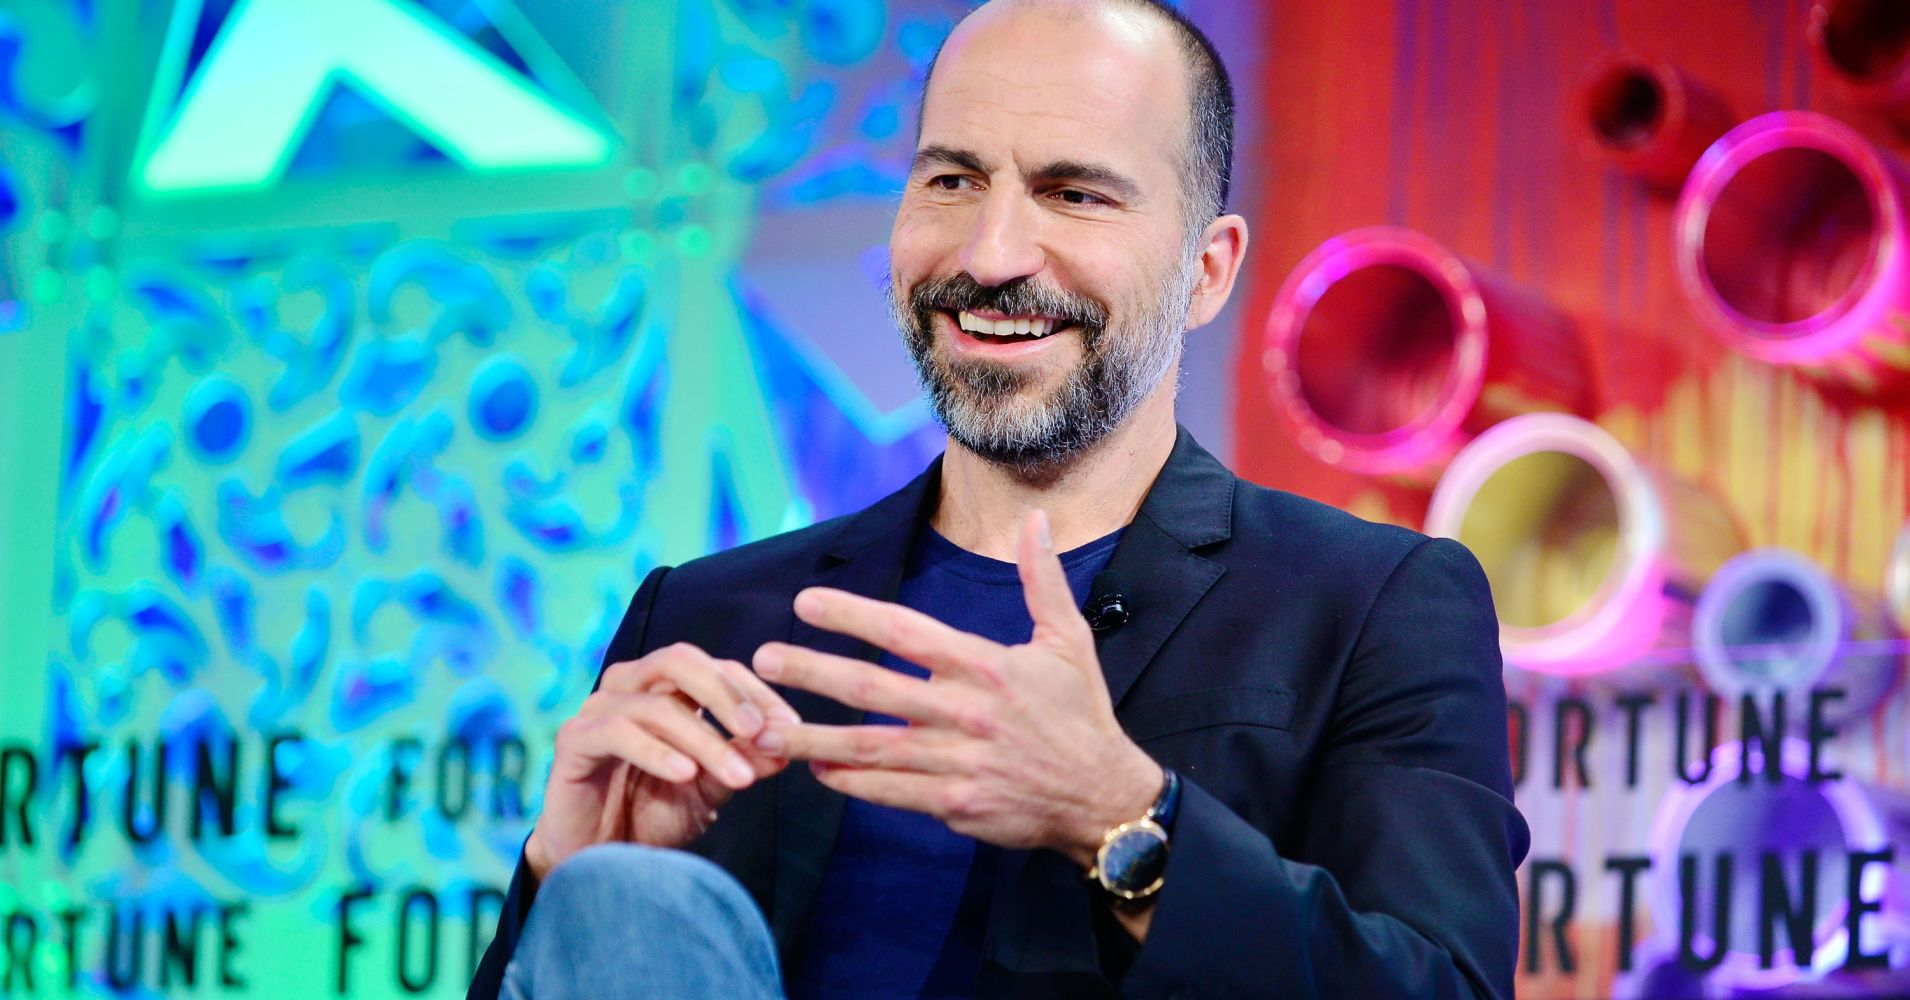 Uber CEO Dara Khosrowshahi attends the Fortune Most Powerful Women Summit in Laguna Niguel, Calif., on Oct. 3, 2018.